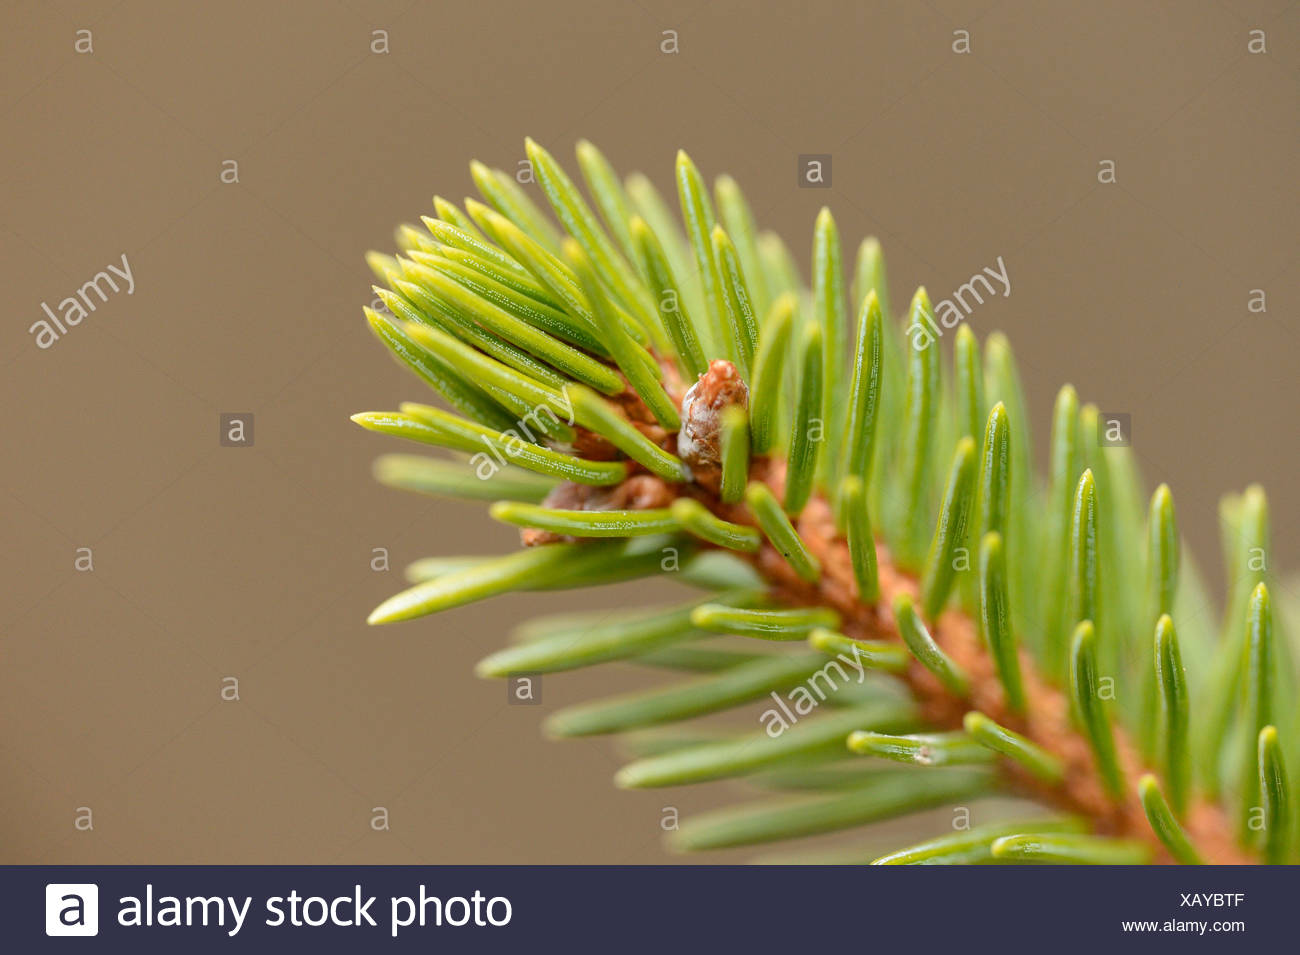 Branch from a Norway Spruce (Picea abies), close-up - Stock Image